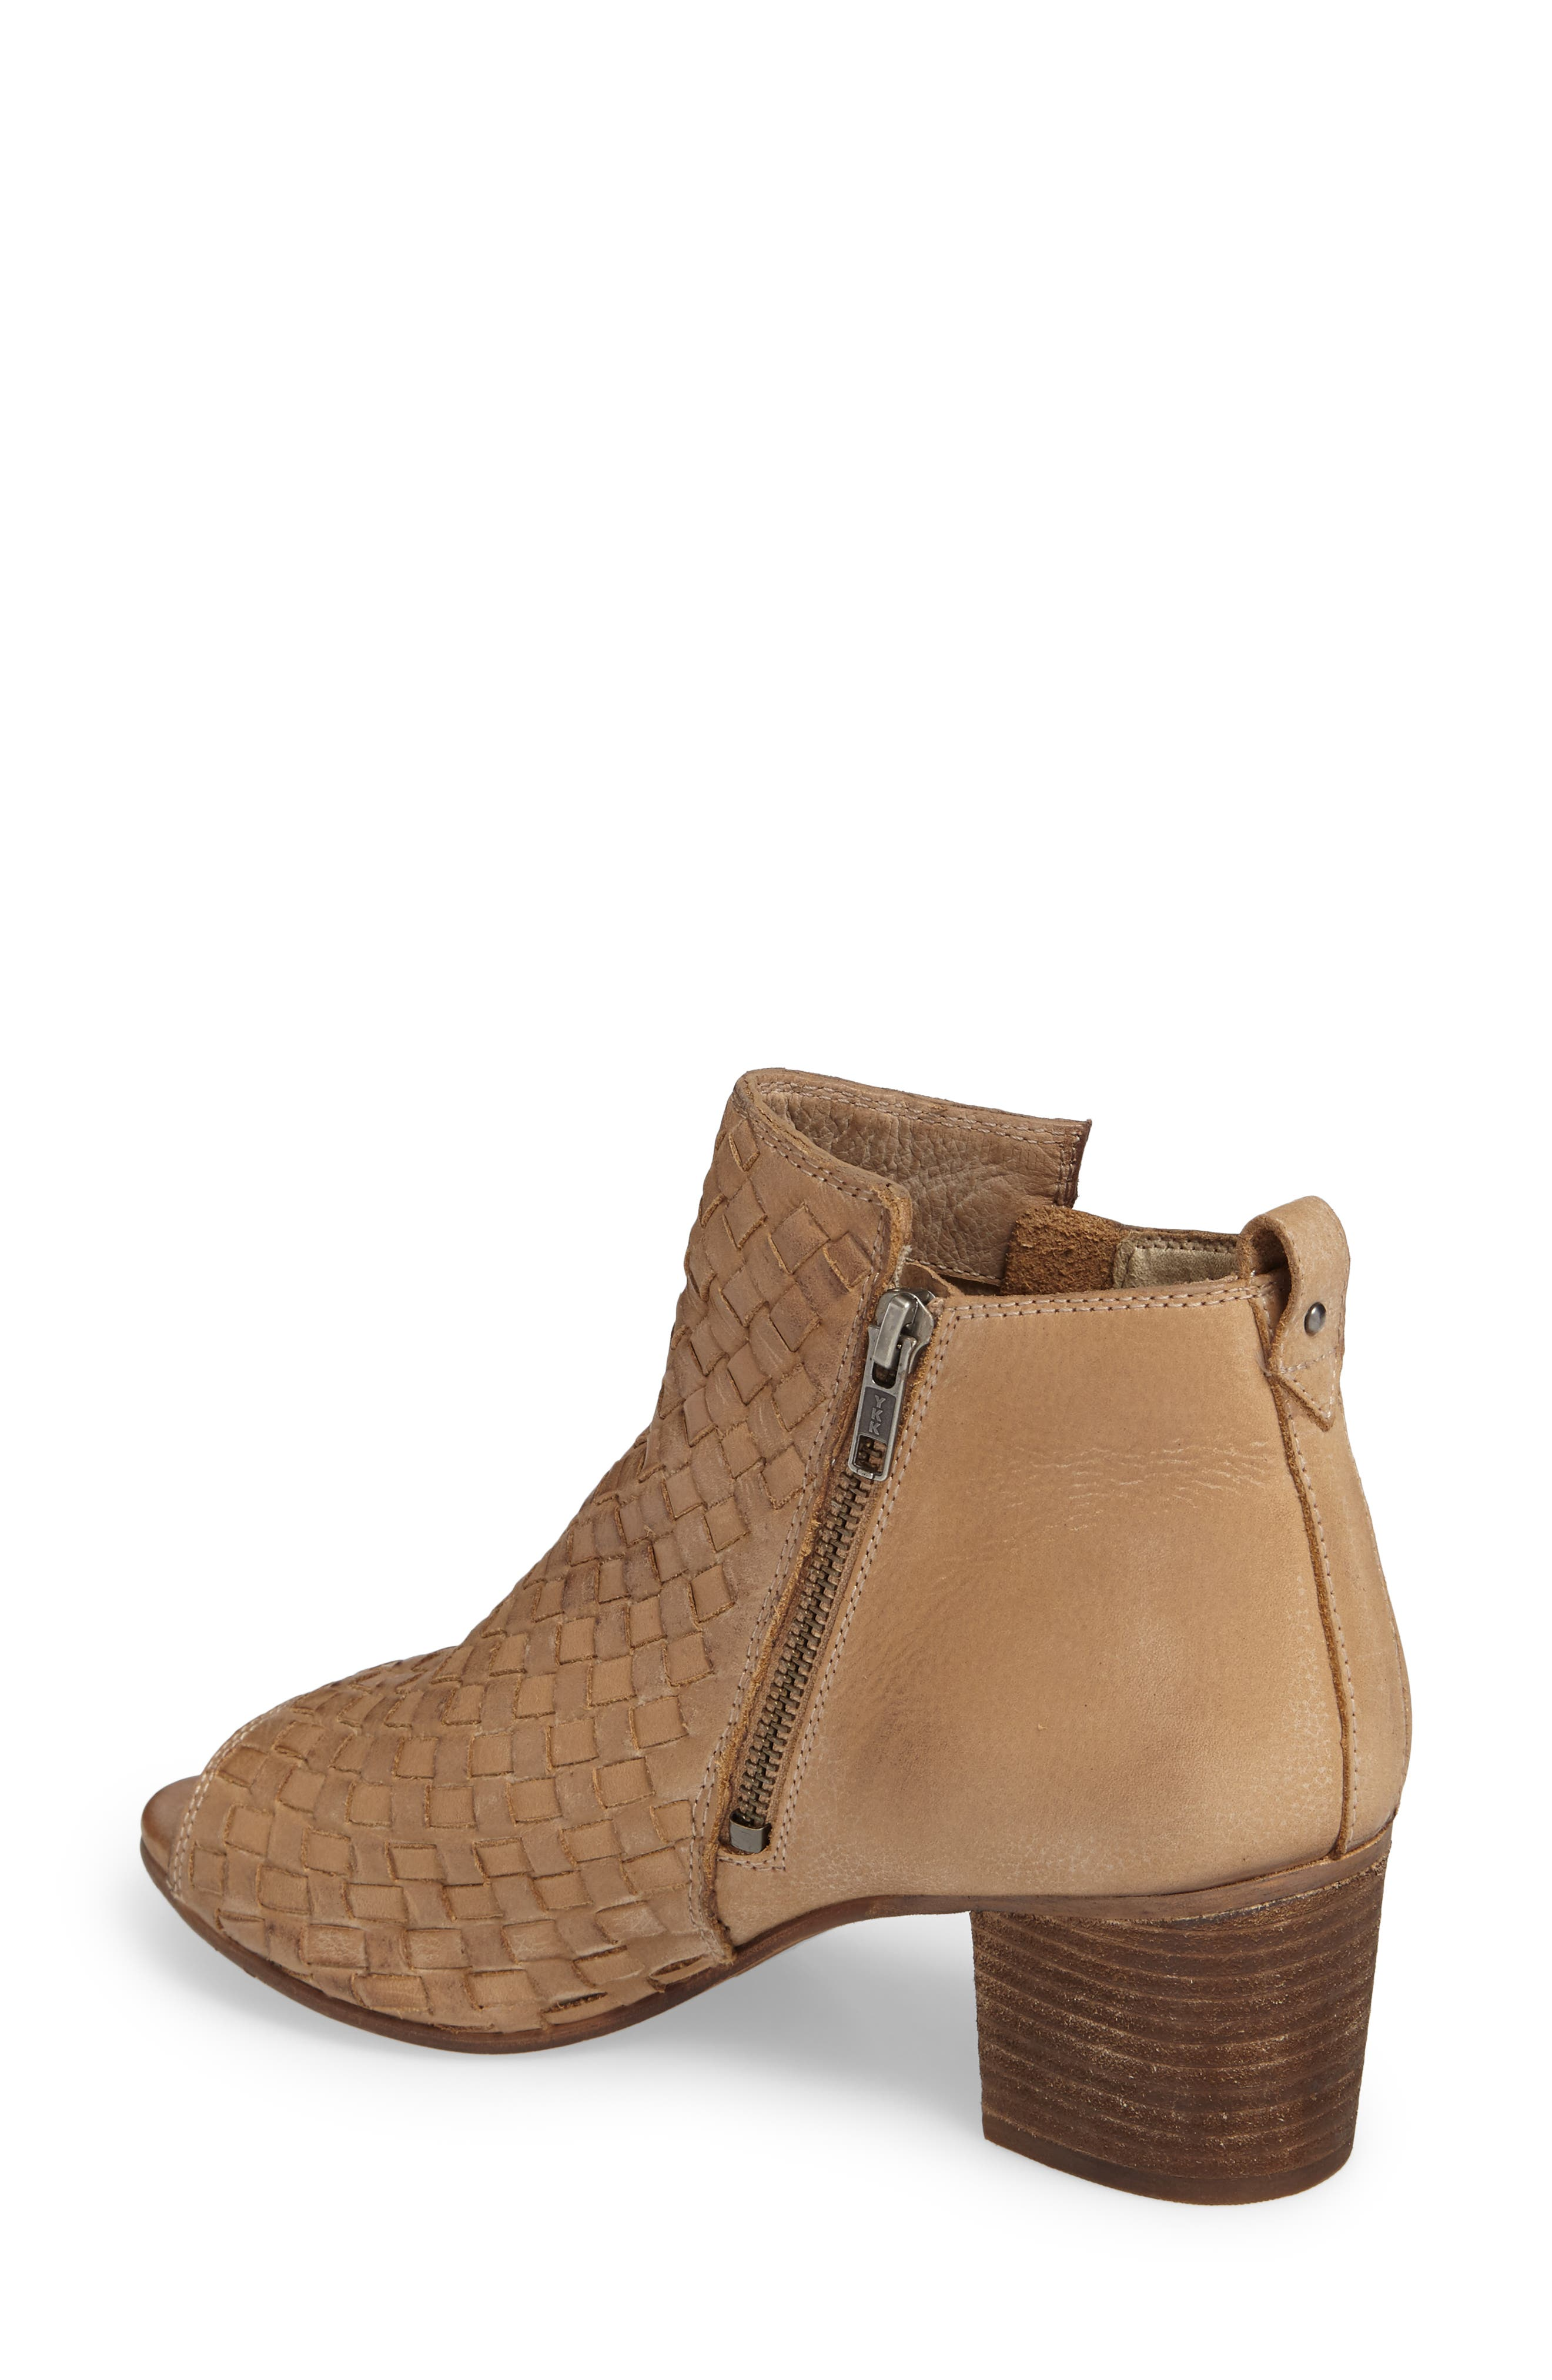 Cacey Open Toe Bootie,                             Alternate thumbnail 4, color,